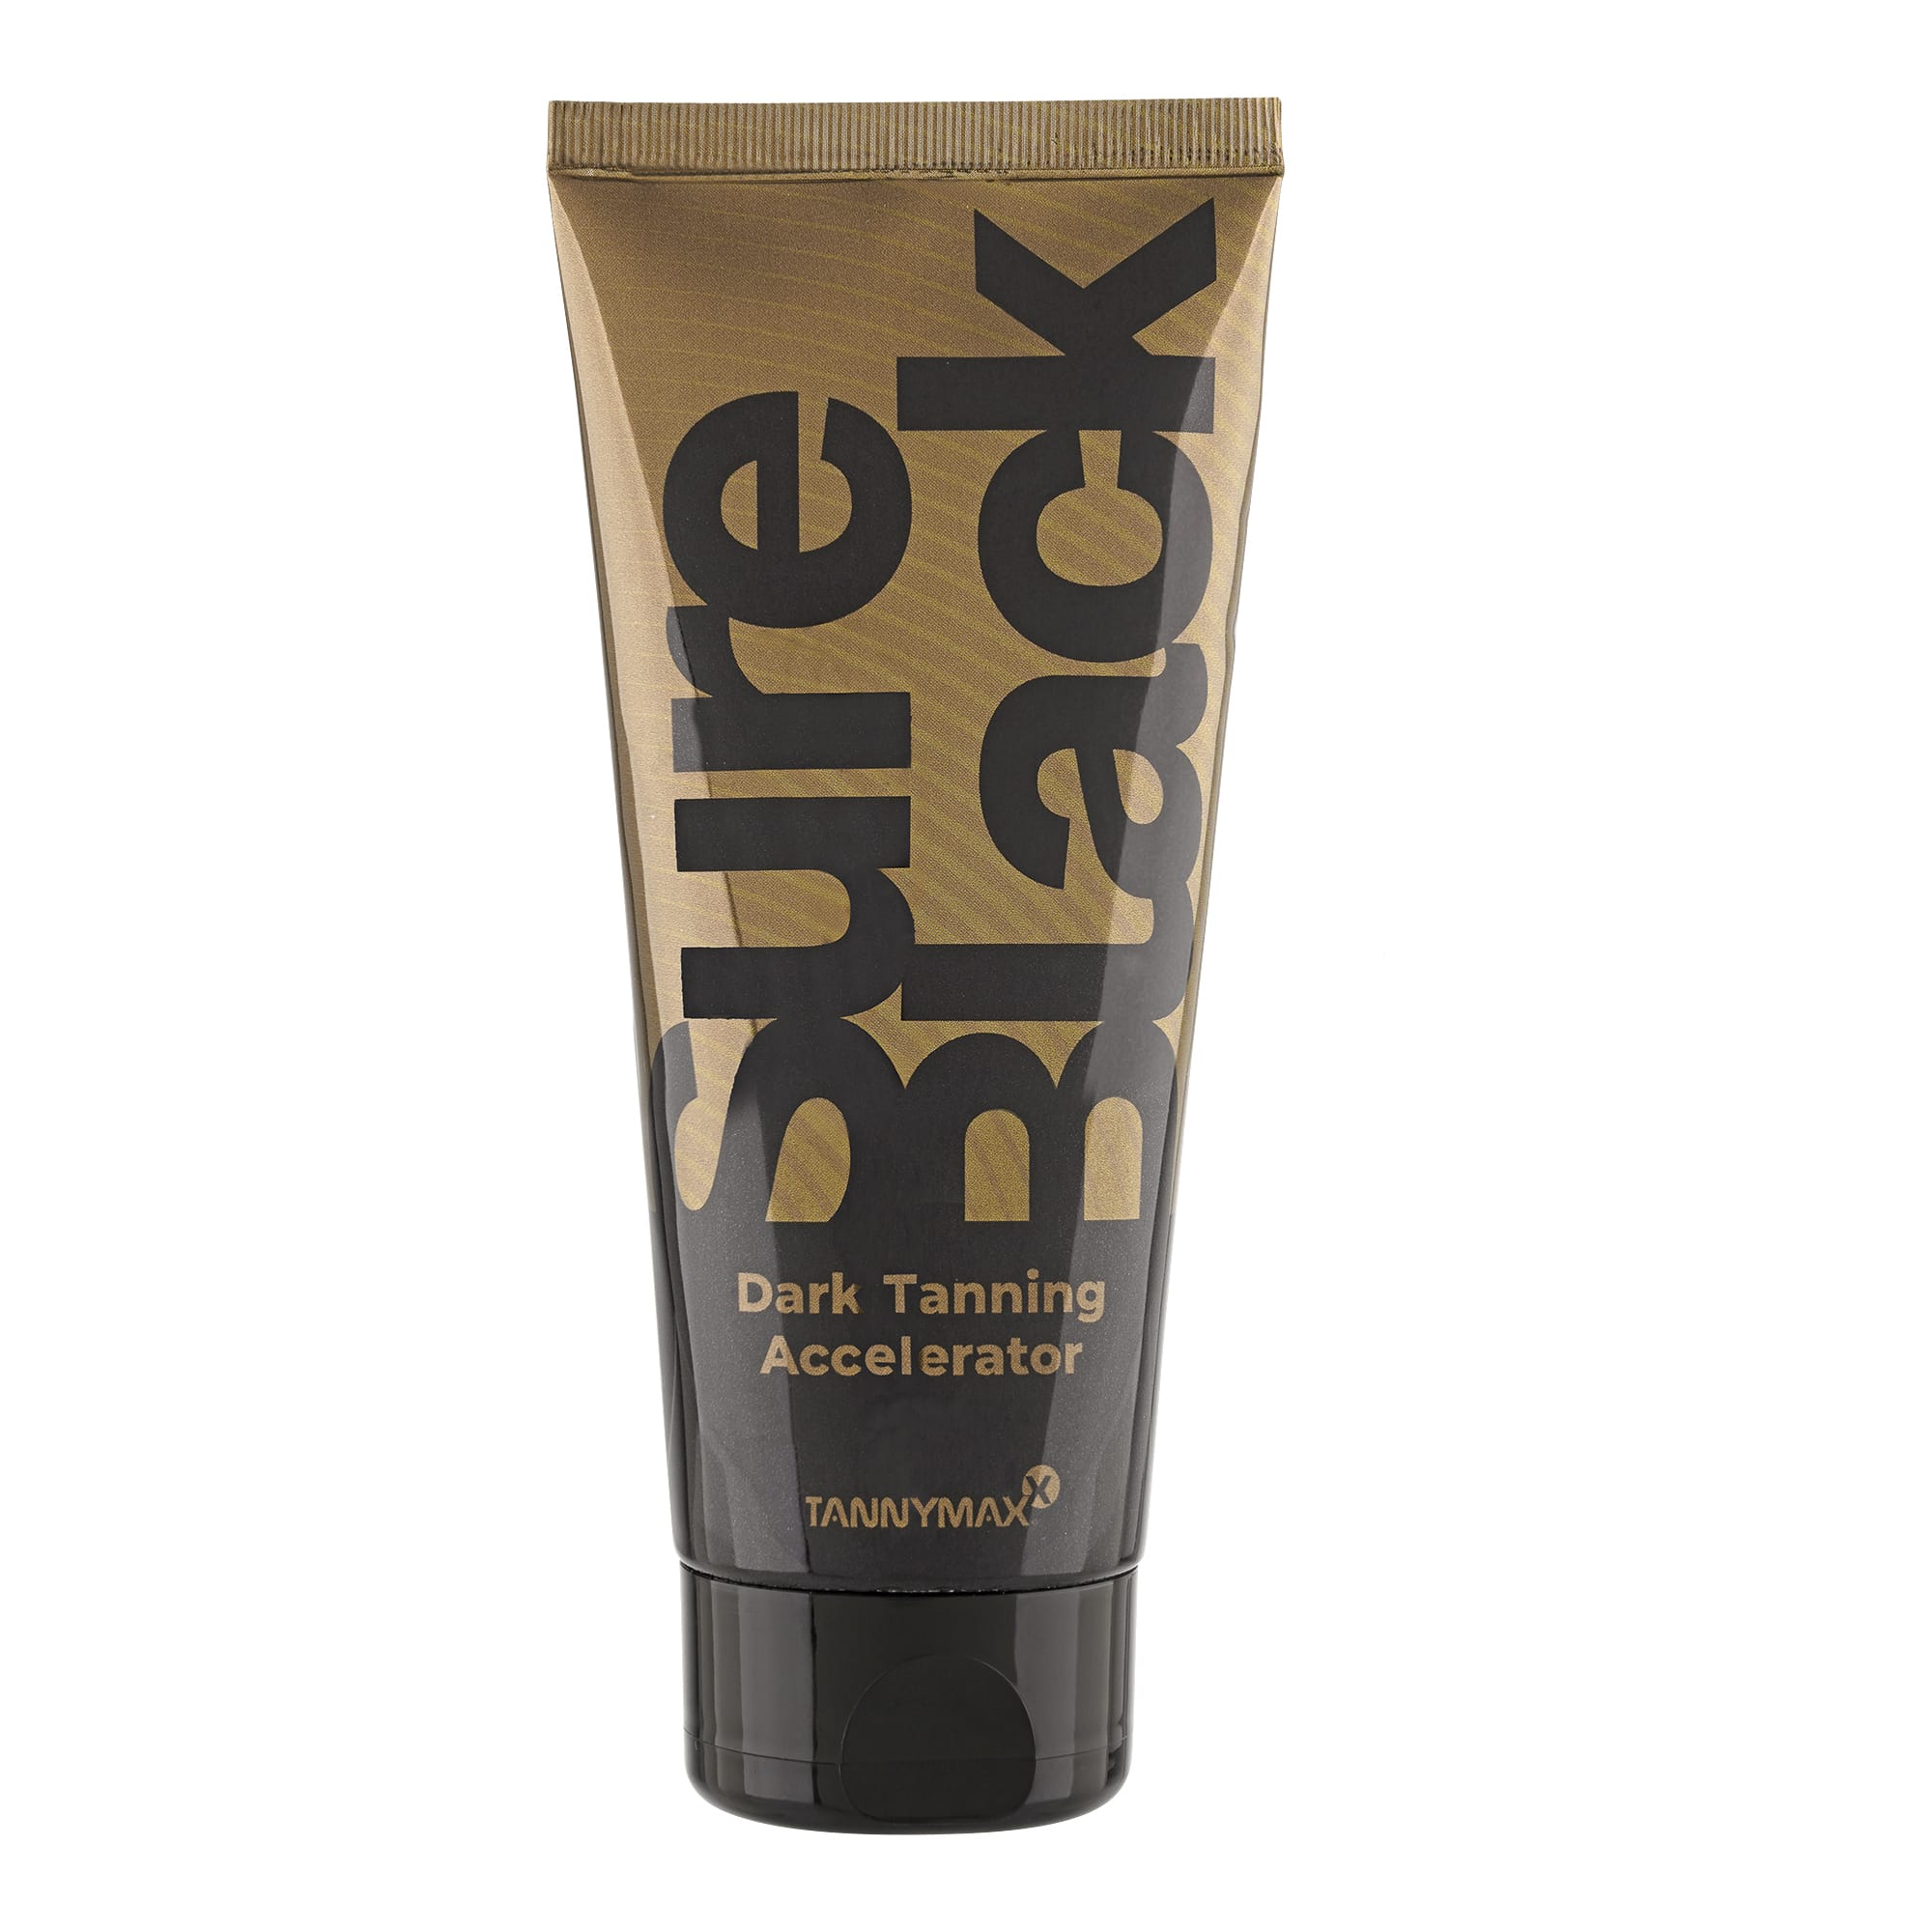 Sure Black Dark Tanning Accelerator